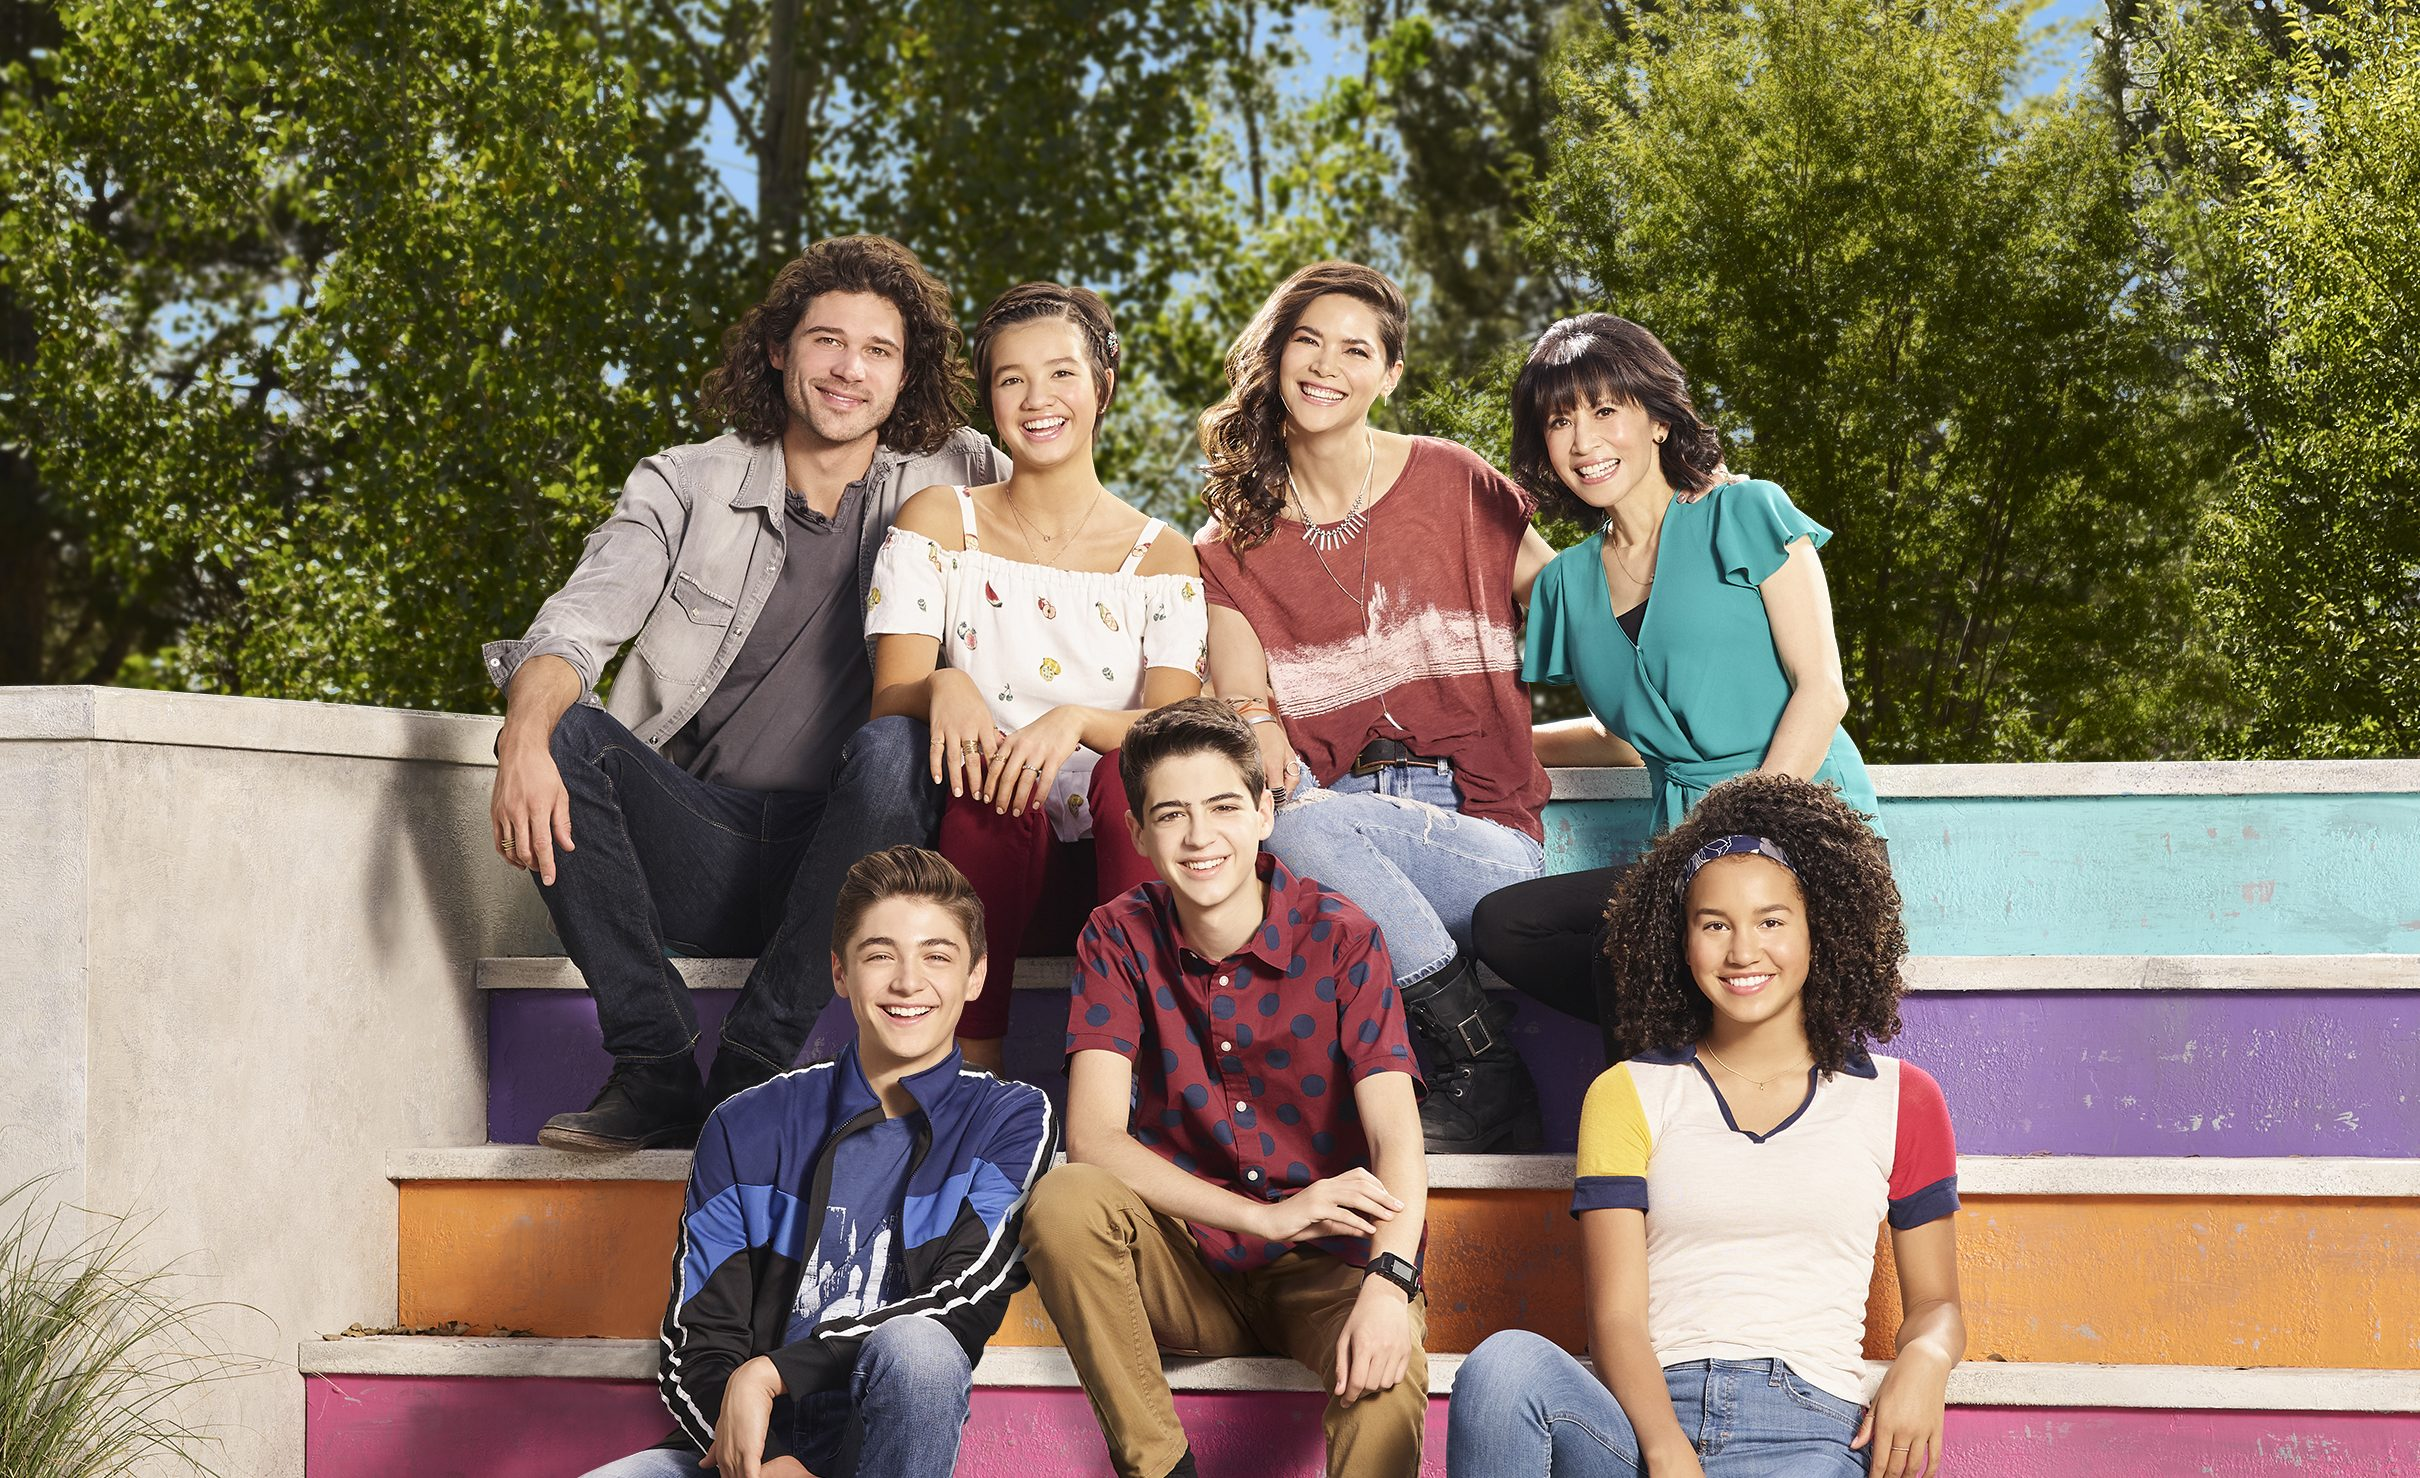 What Happened to Marty From the Party? – Andi Mack Season 3